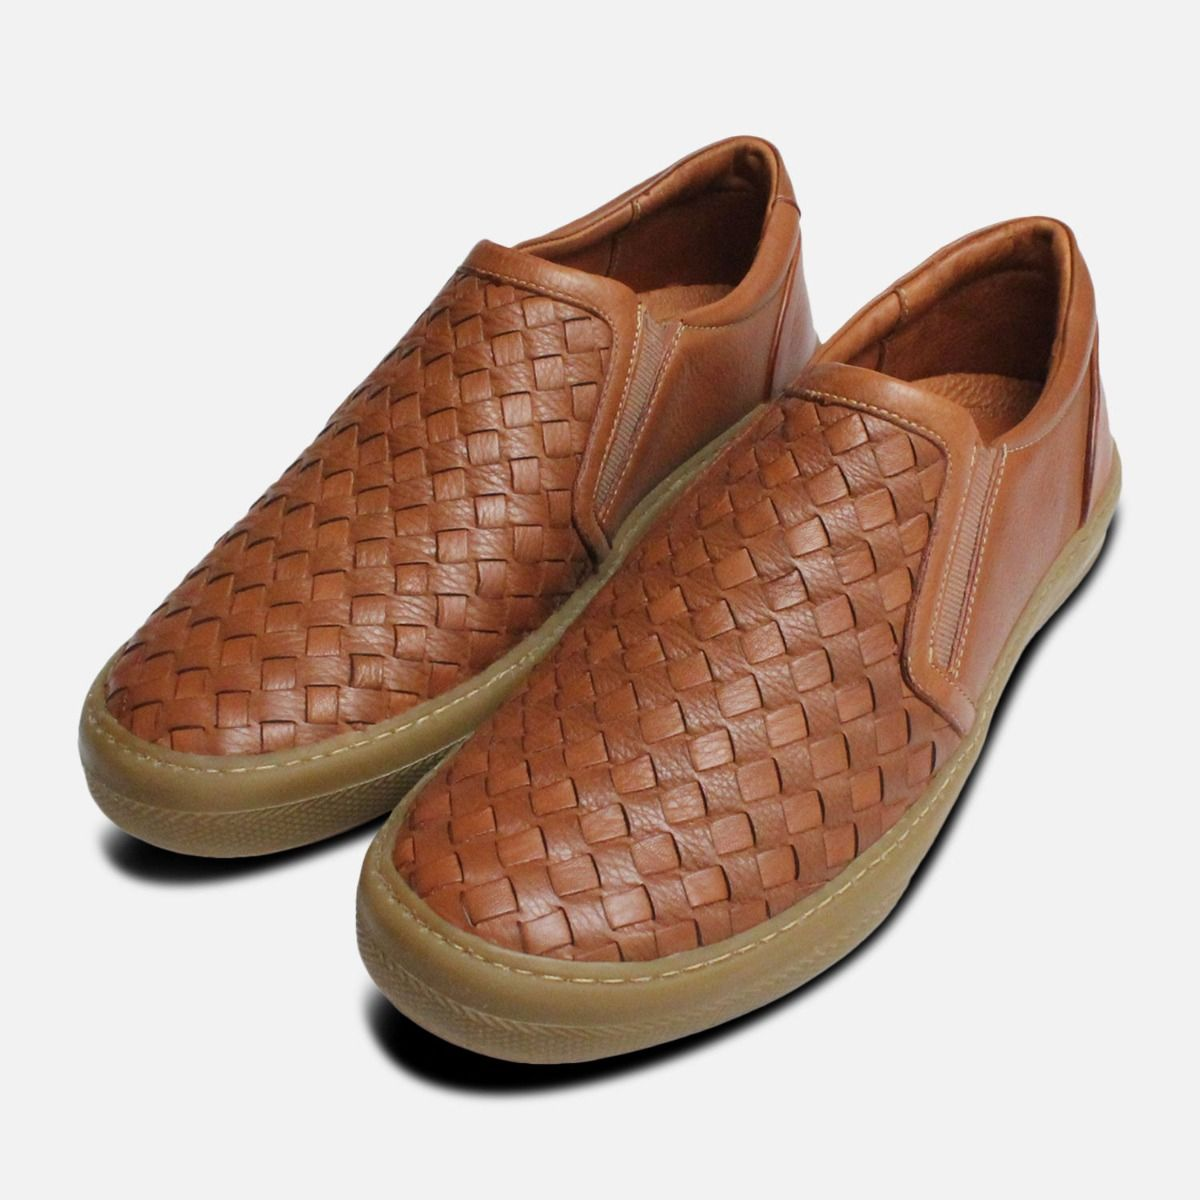 b07c971341 Brown Weave Loafers for Men by Anatomic Shoes